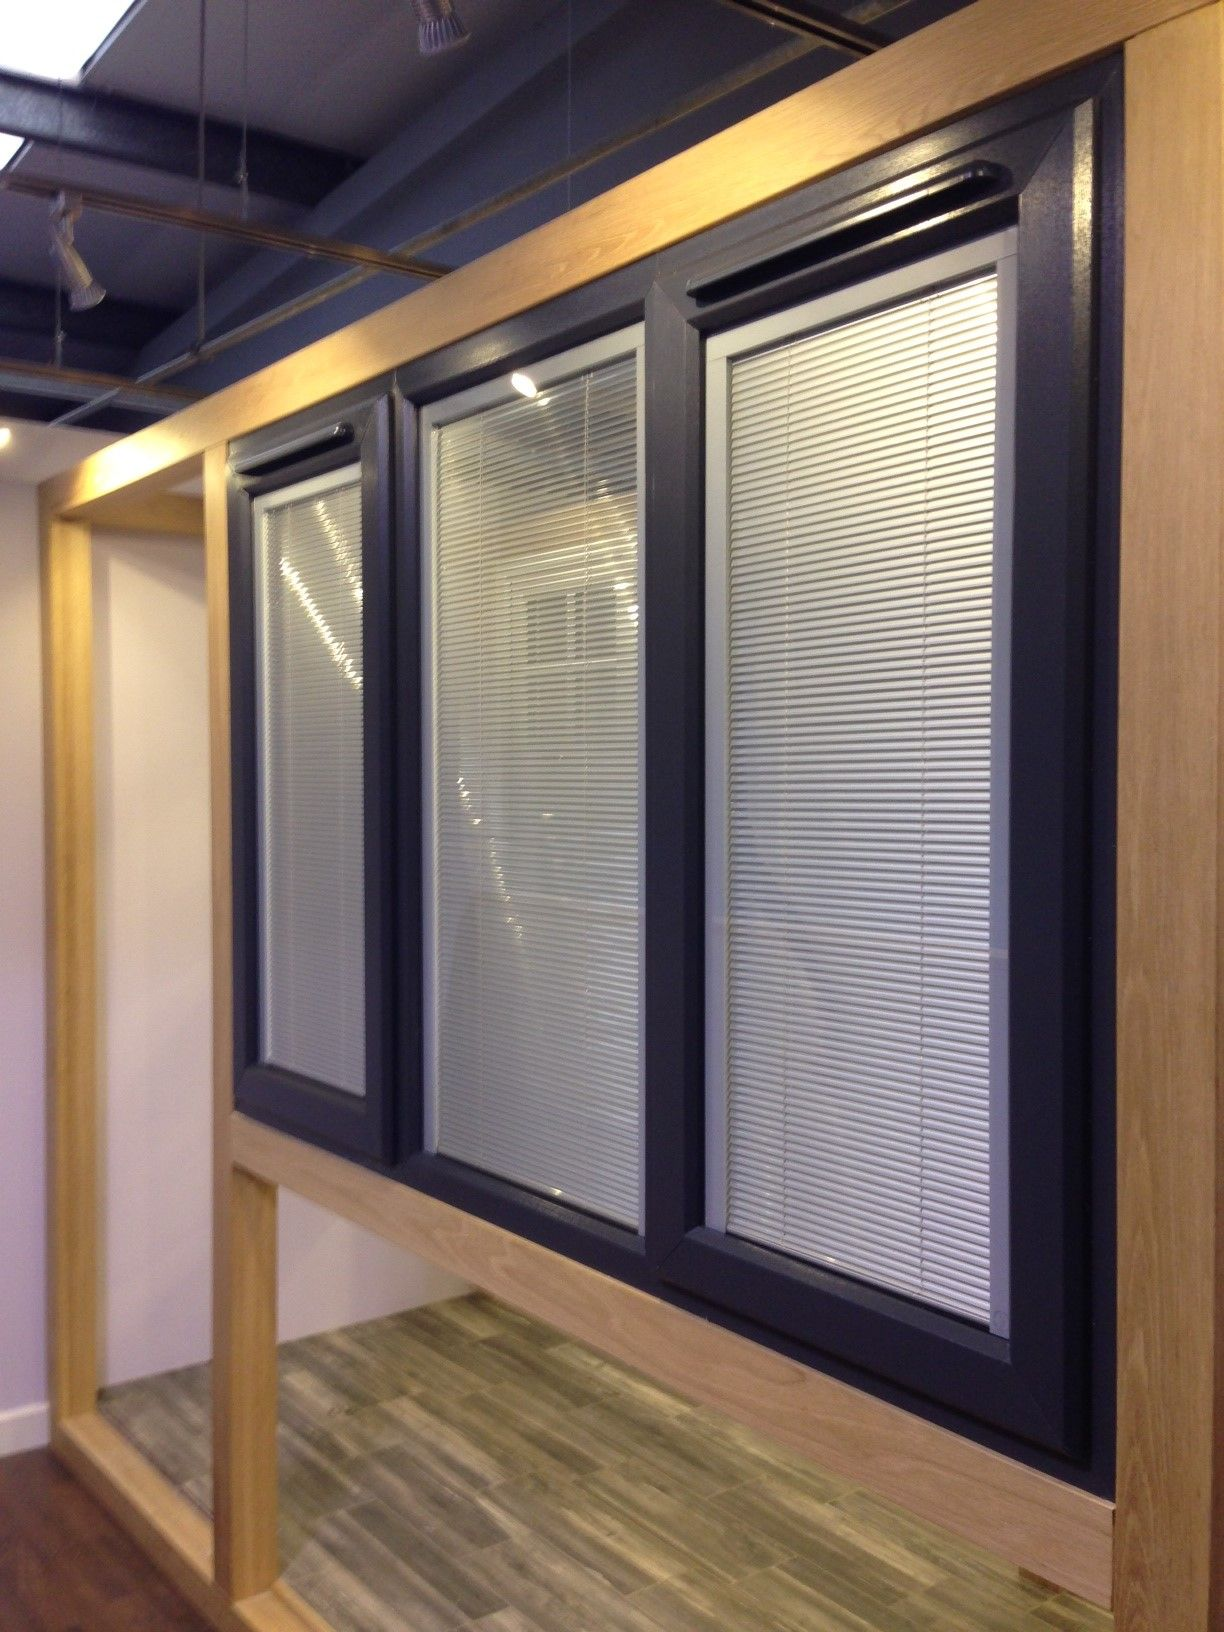 Brand New Integral Venetian Blinds Have Just Been Fitted They Re Anthracite Grey On